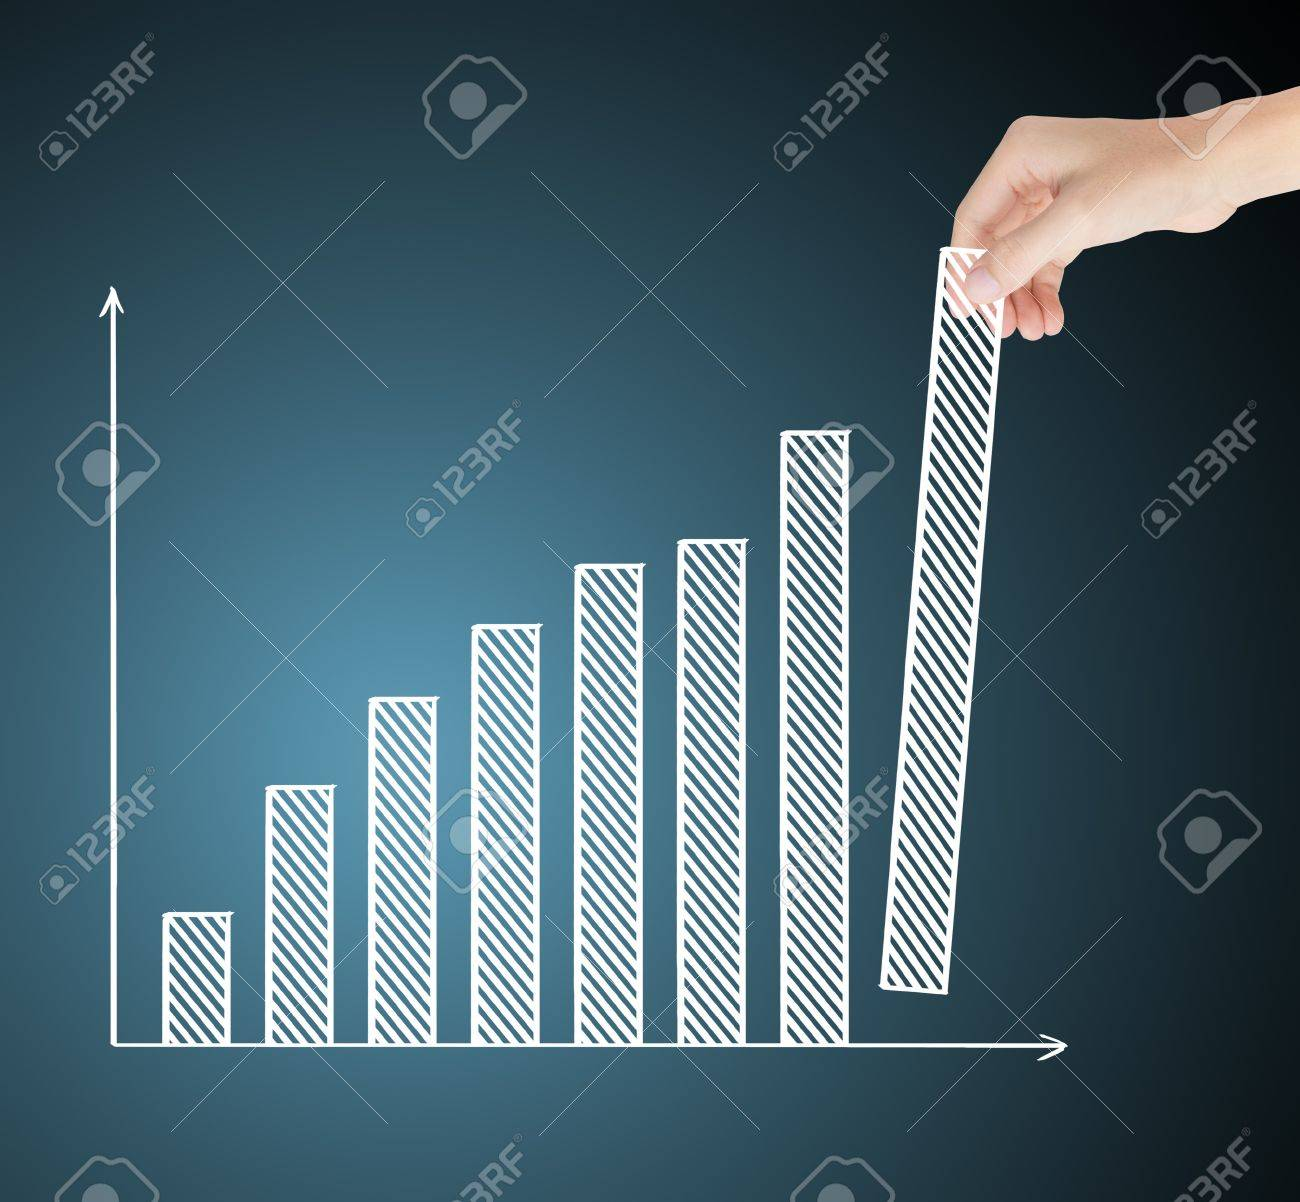 business hand building upward trend financial graph Stock Photo - 16450364